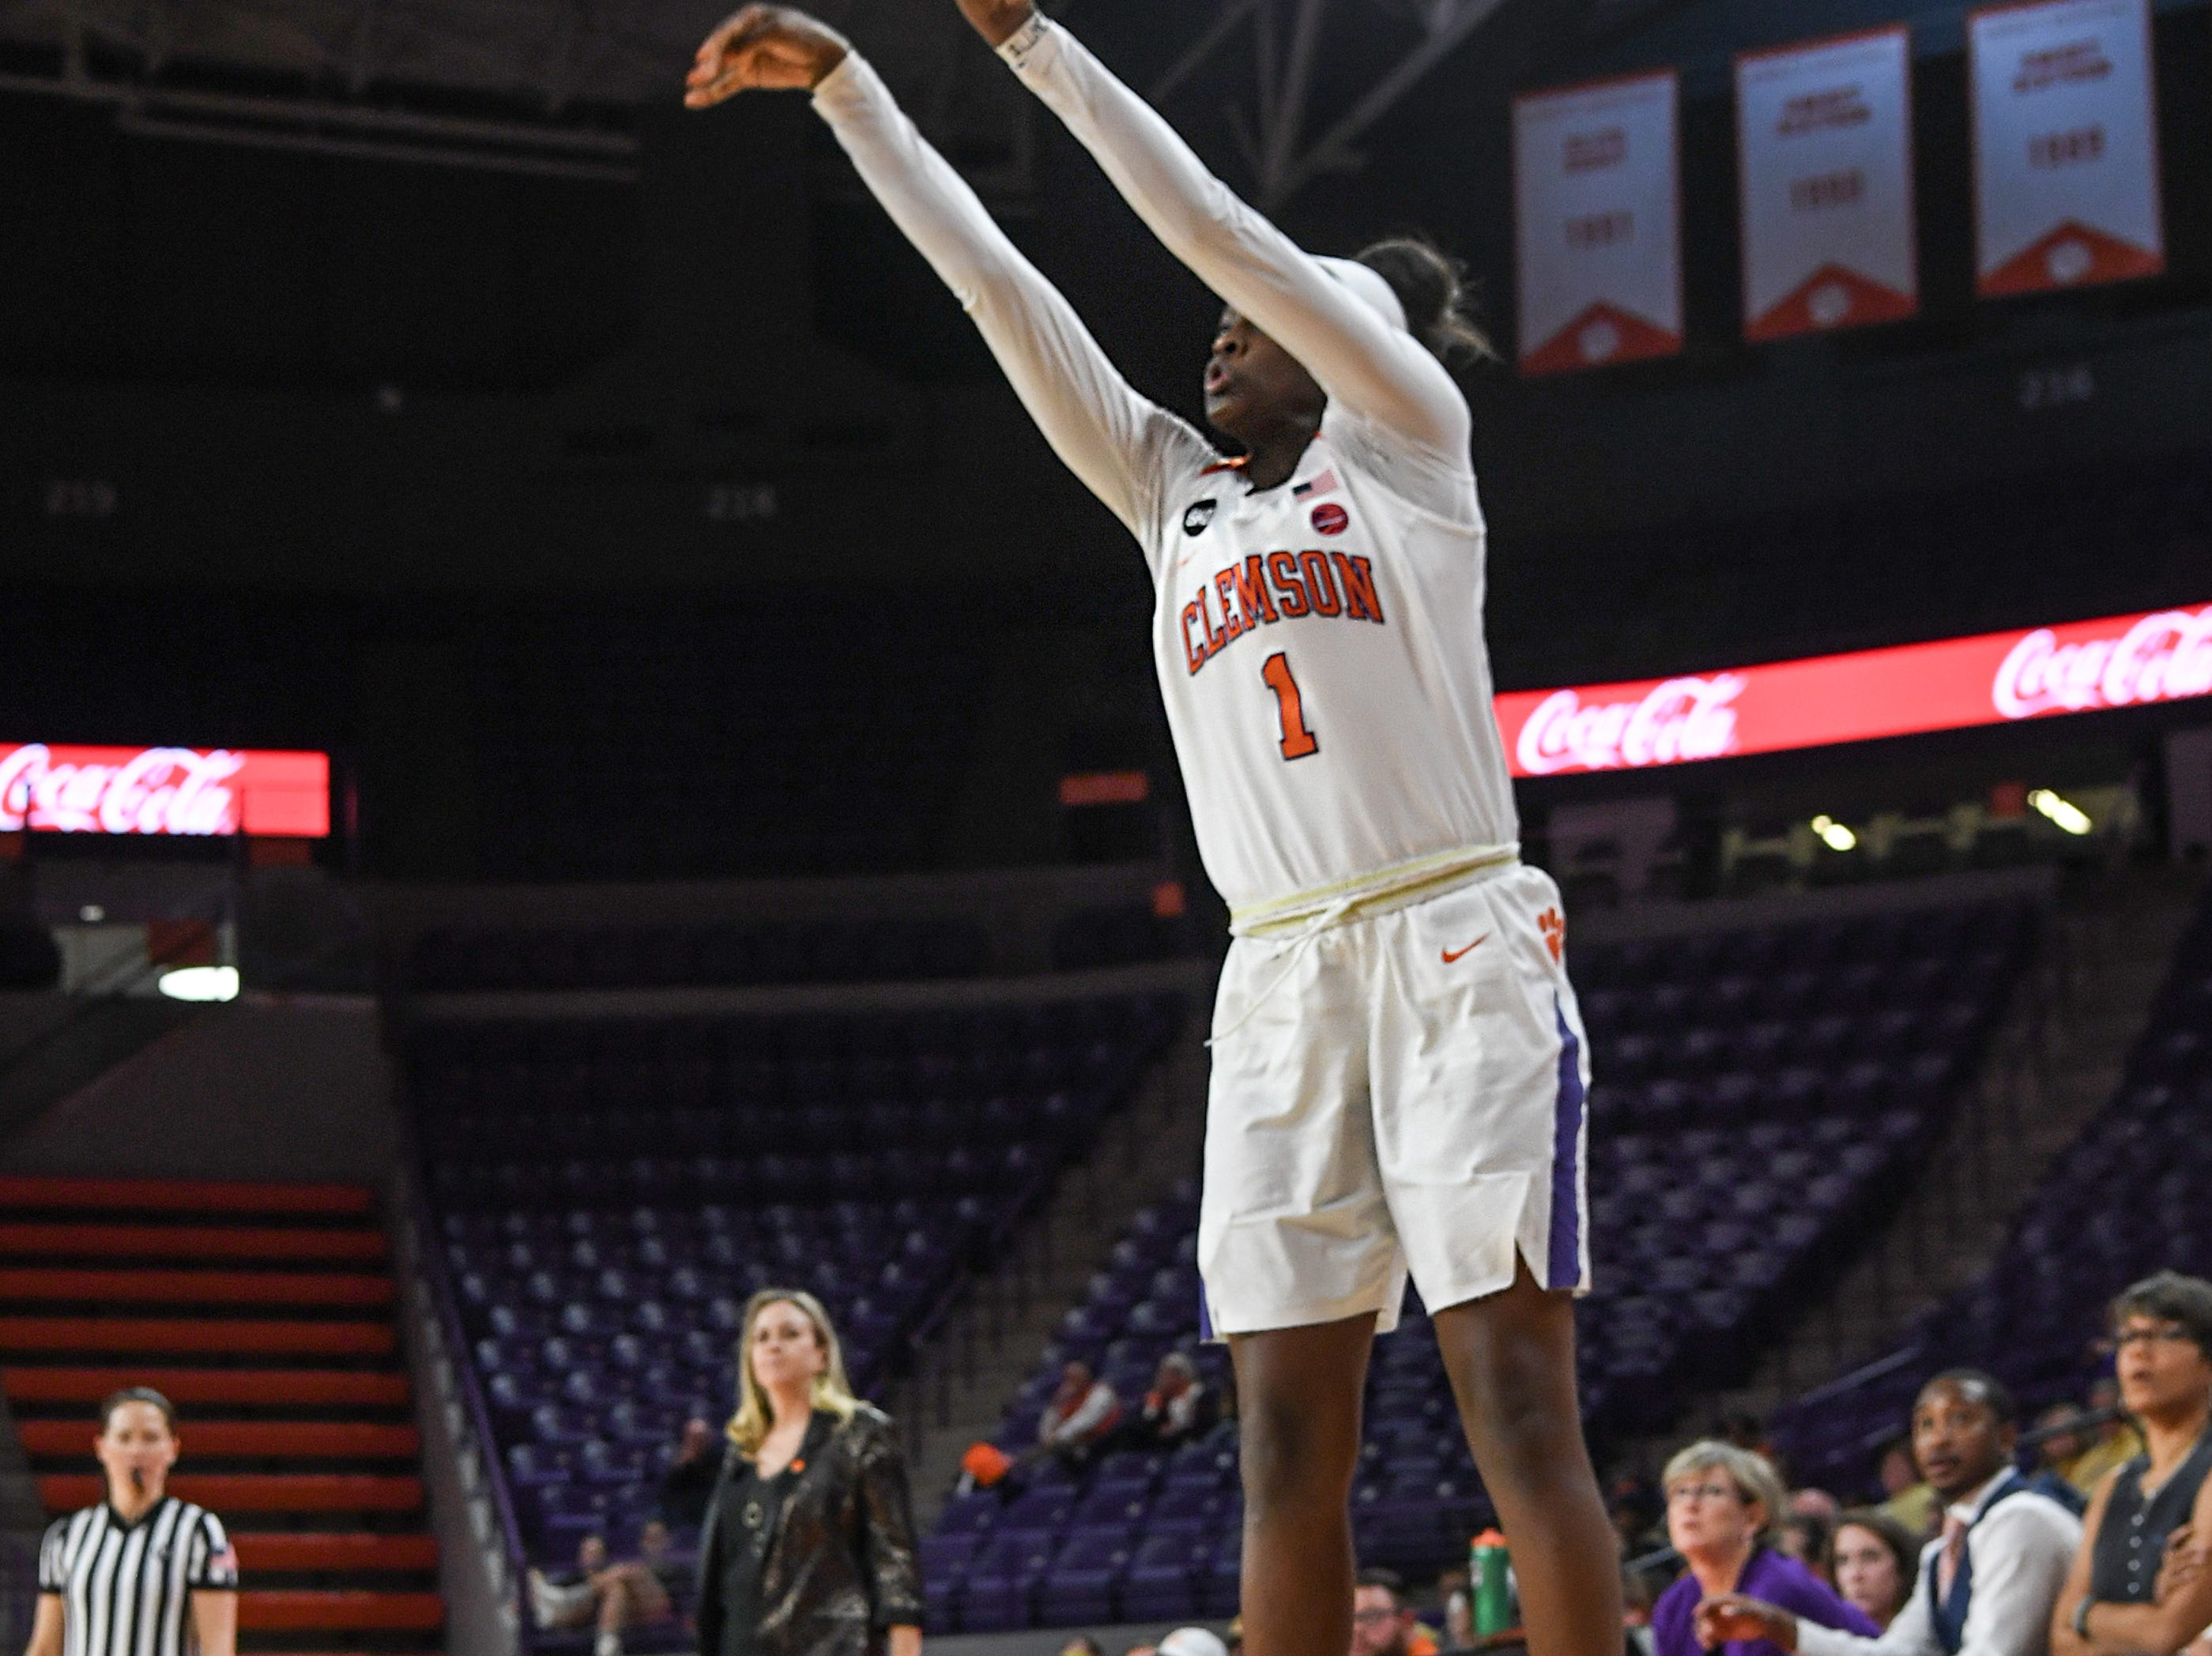 Clemson guard Destiny Thomas(1) shoots during the fourth quarter at Littlejohn Coliseum in Clemson Thursday, January 17, 2019.